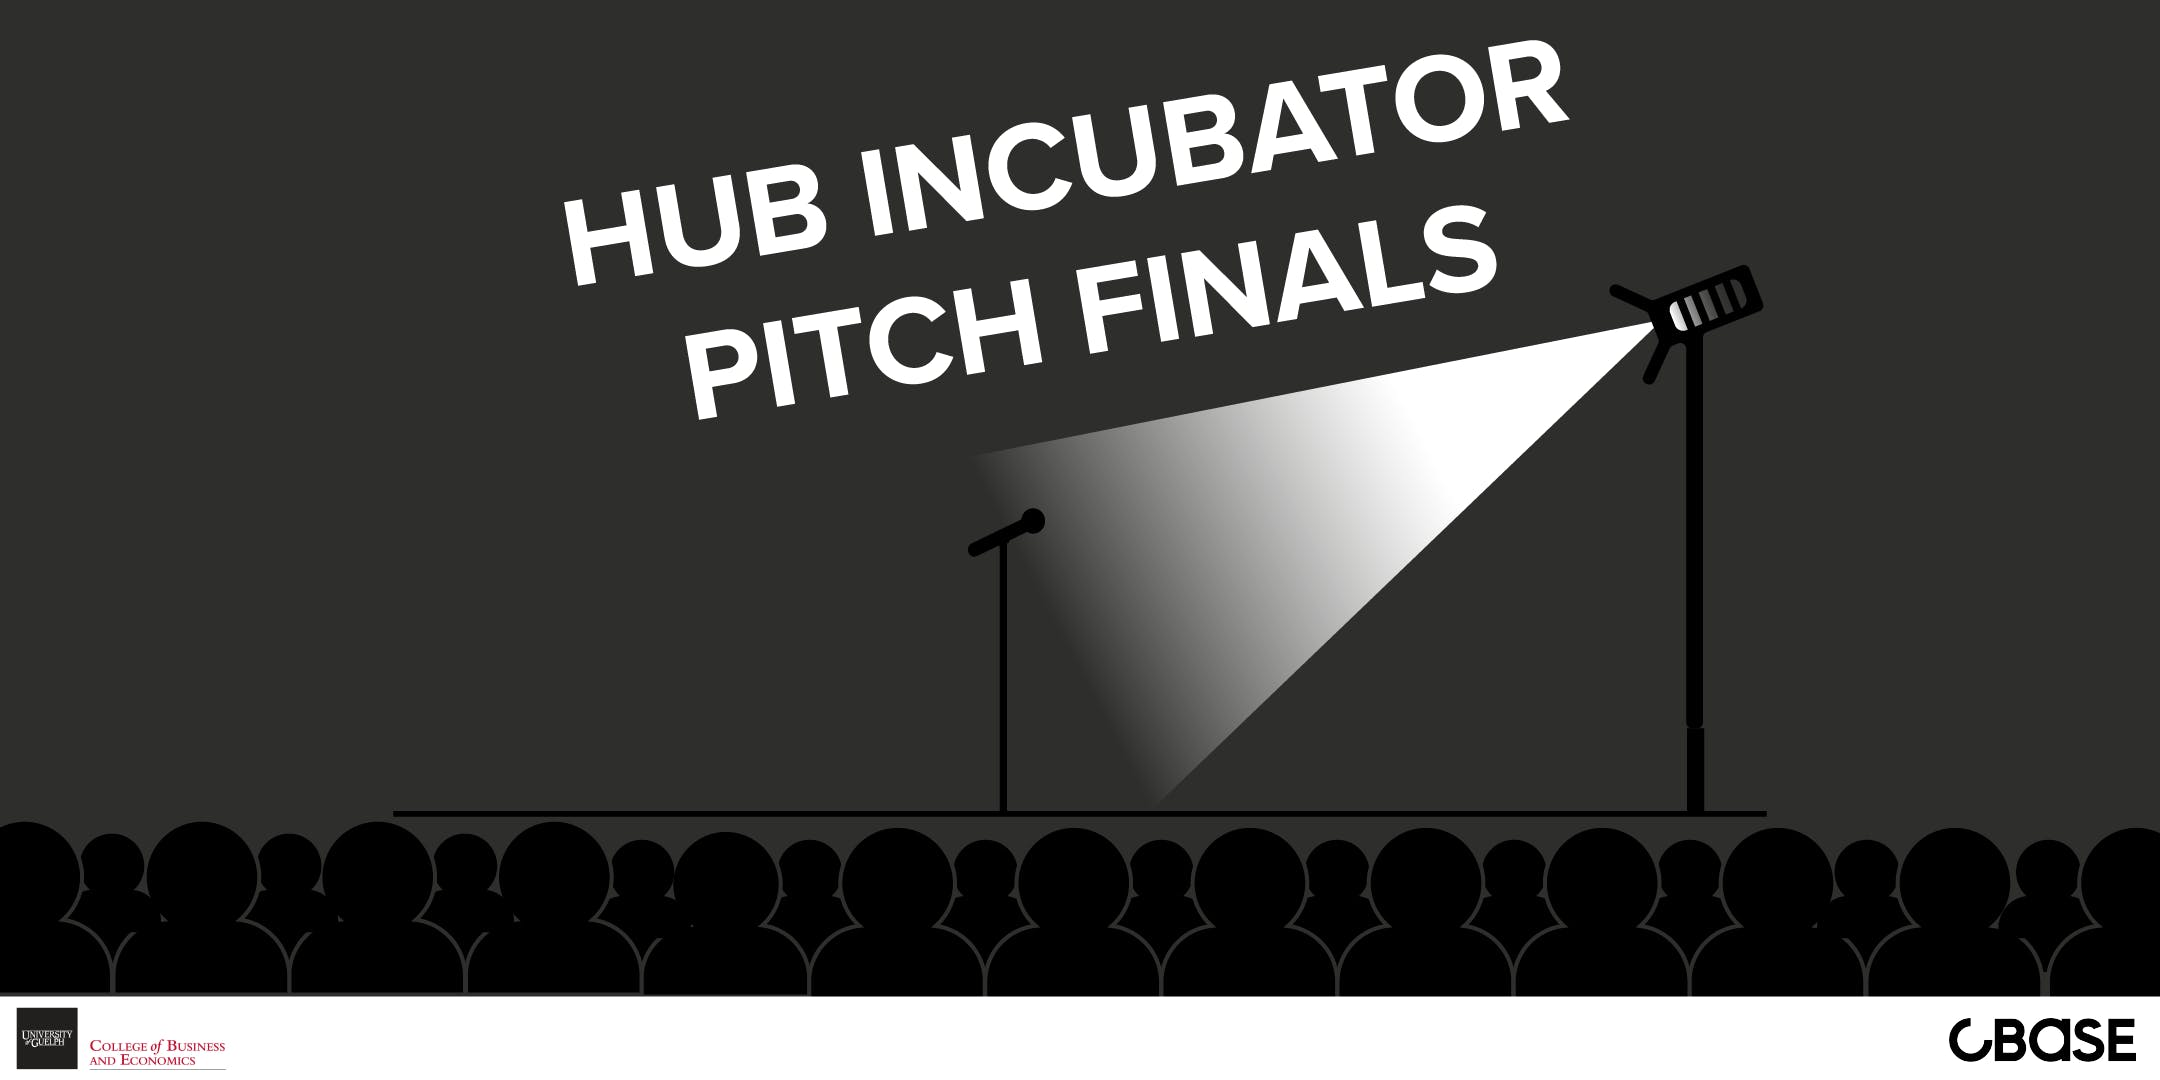 Hub Incubator Pitch Finals